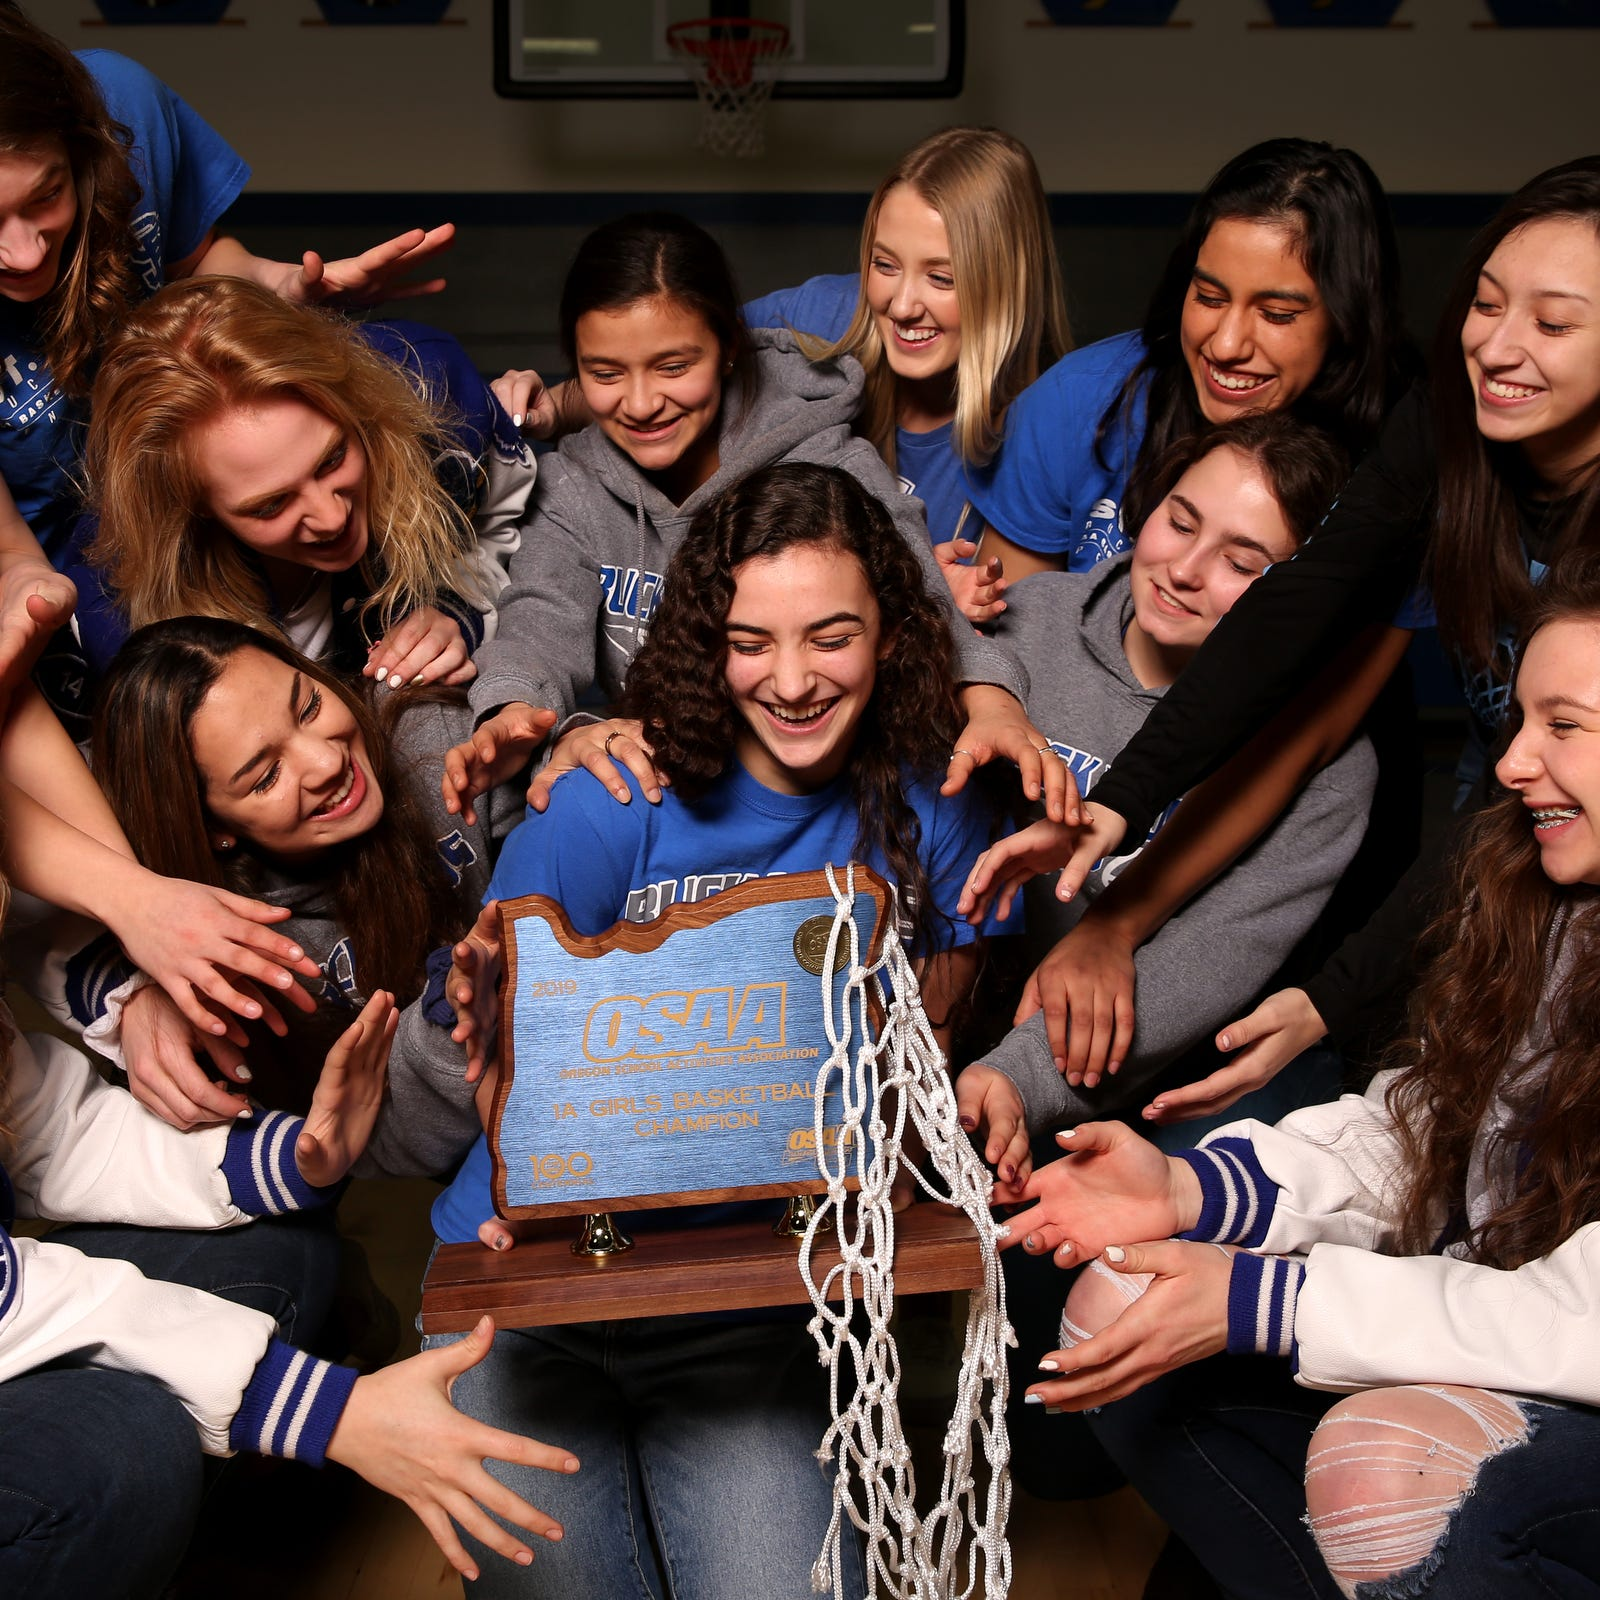 Undefeated in two sports; St. Paul girls win basketball and volleyball titles